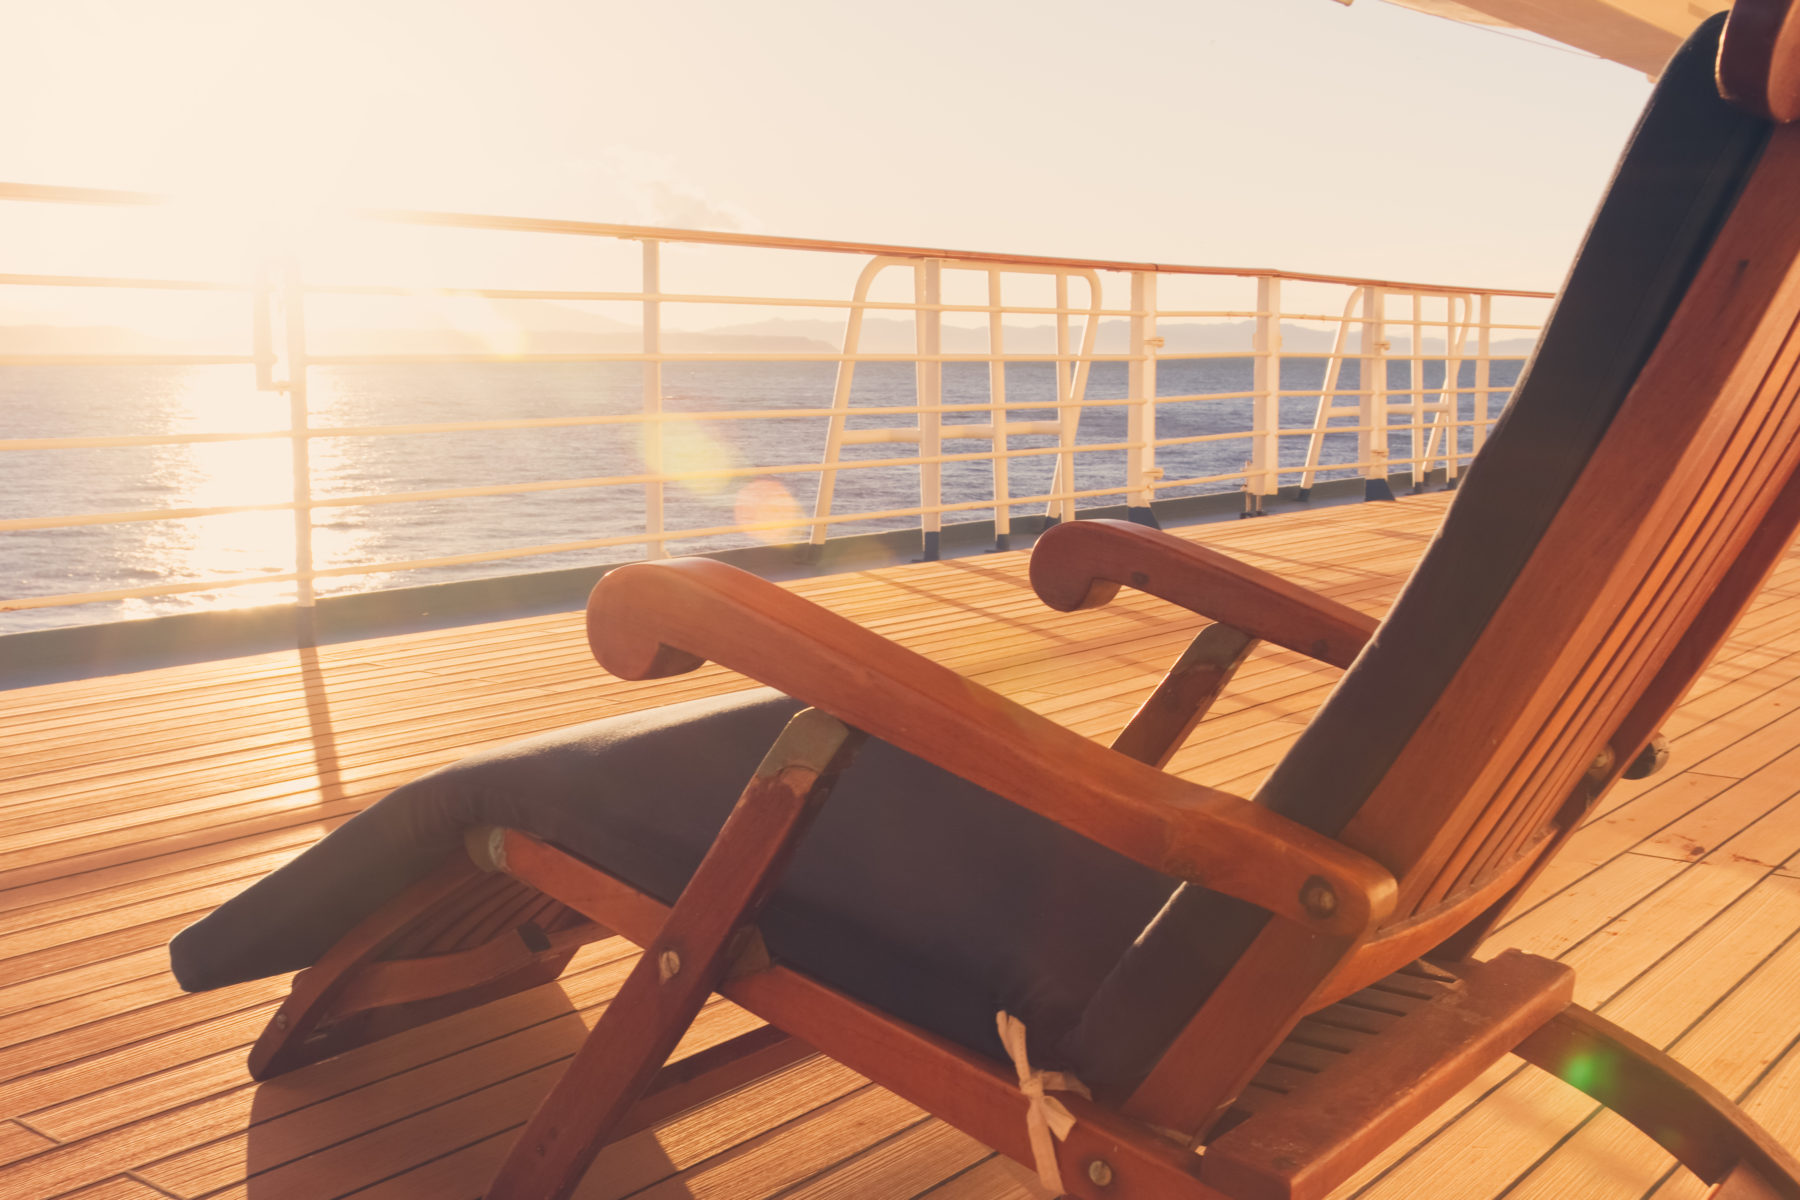 Deck of a cruise ship. Credit: iStock